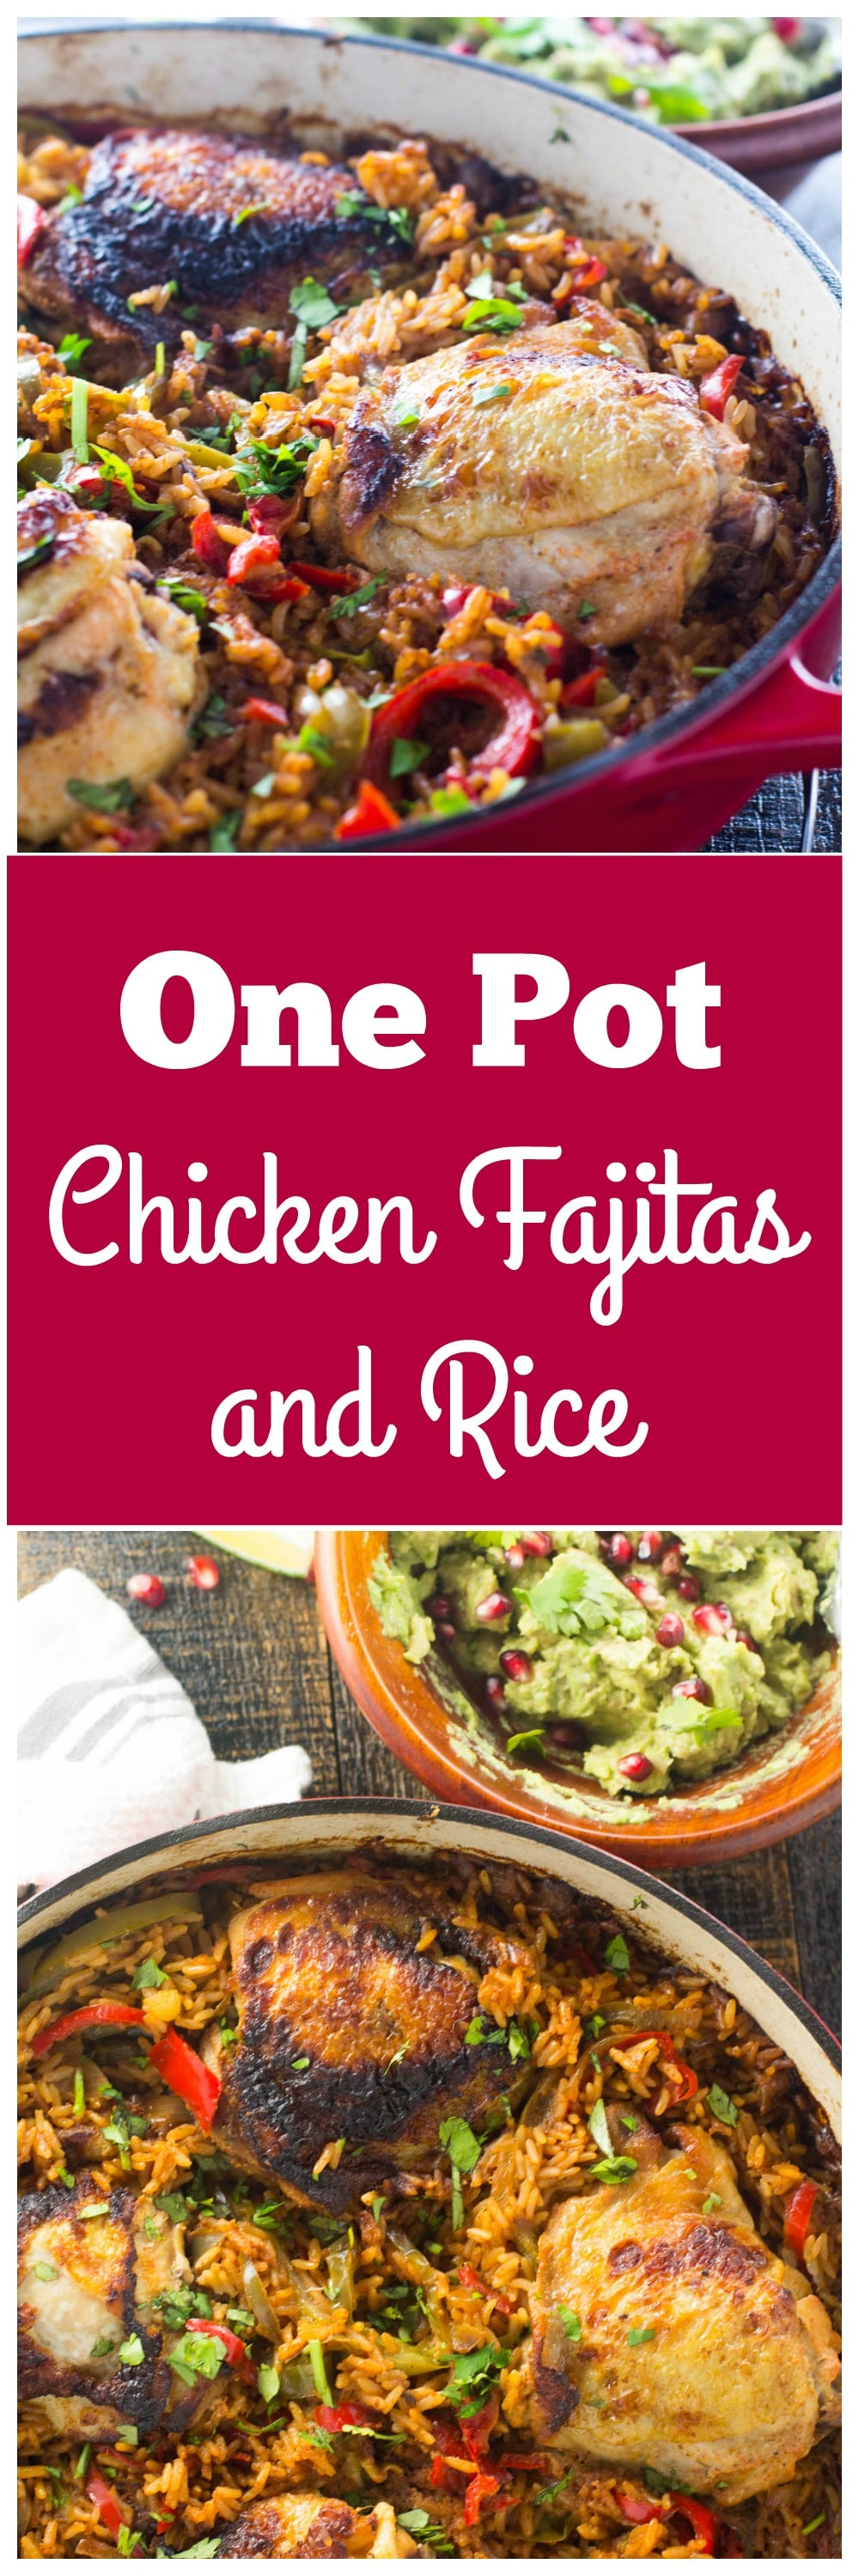 My One Pot Chicken Fajitas and Rice is full of garlic, onions, peppers and a sweet secret ingredient that just makes these irresistible!